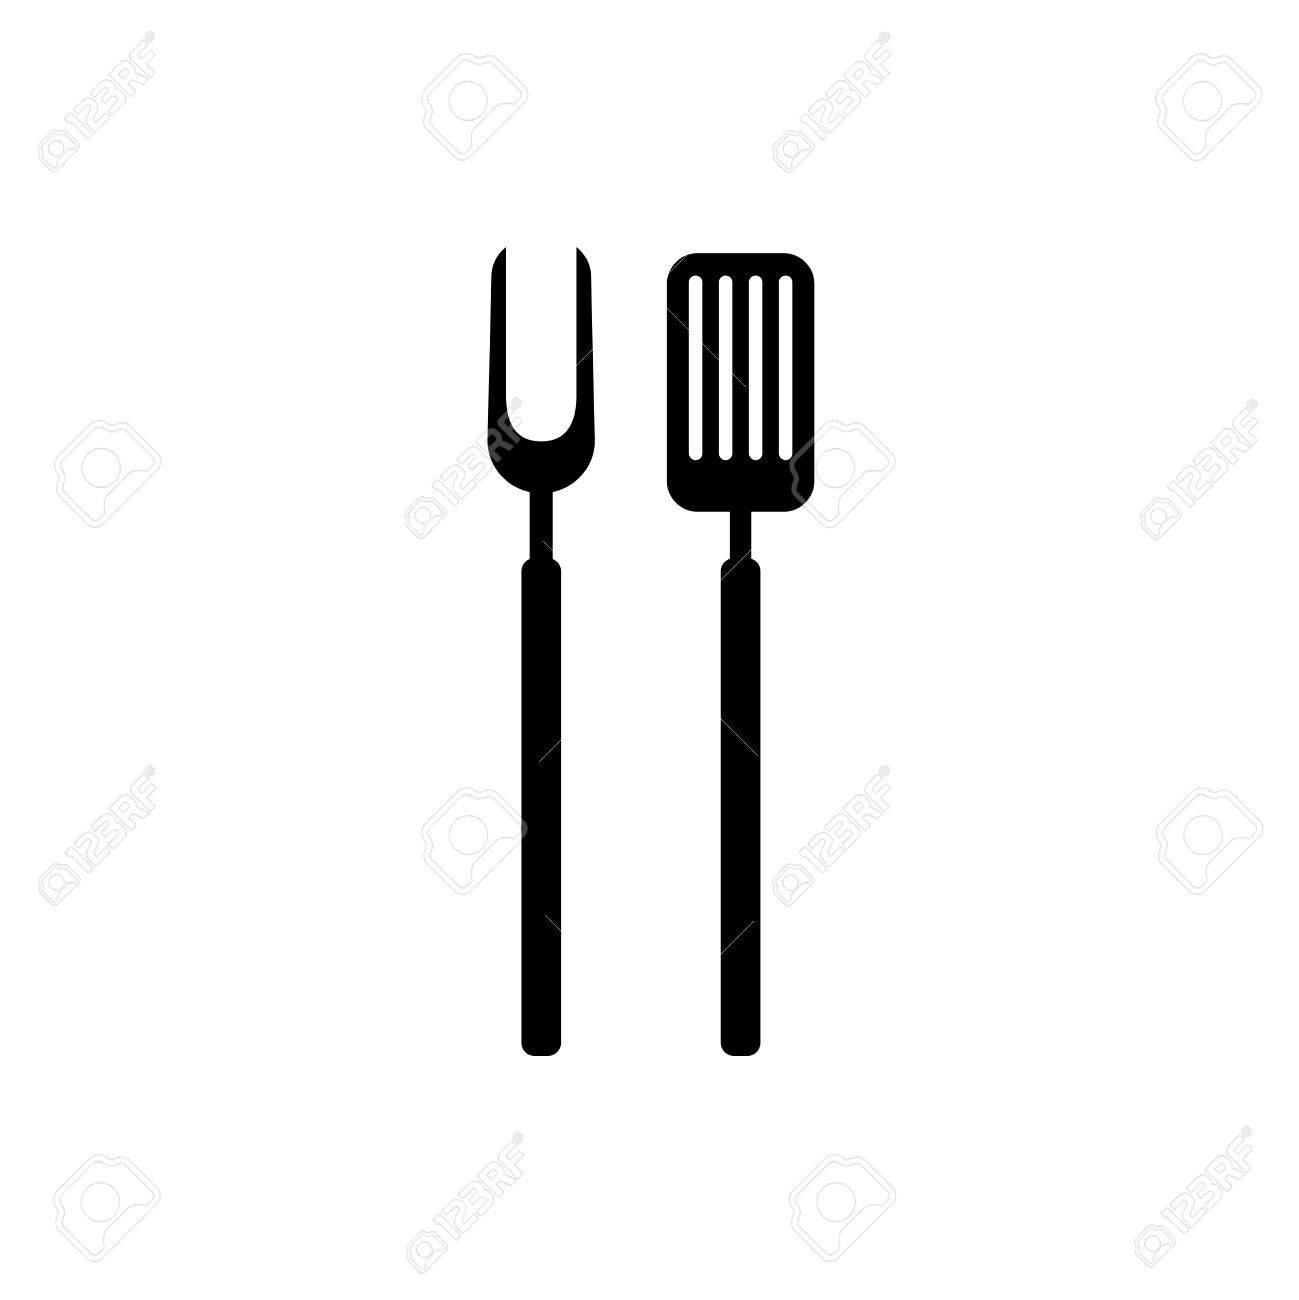 BBQ barbeque tools black simple silhouette. Meat fork with spatu.